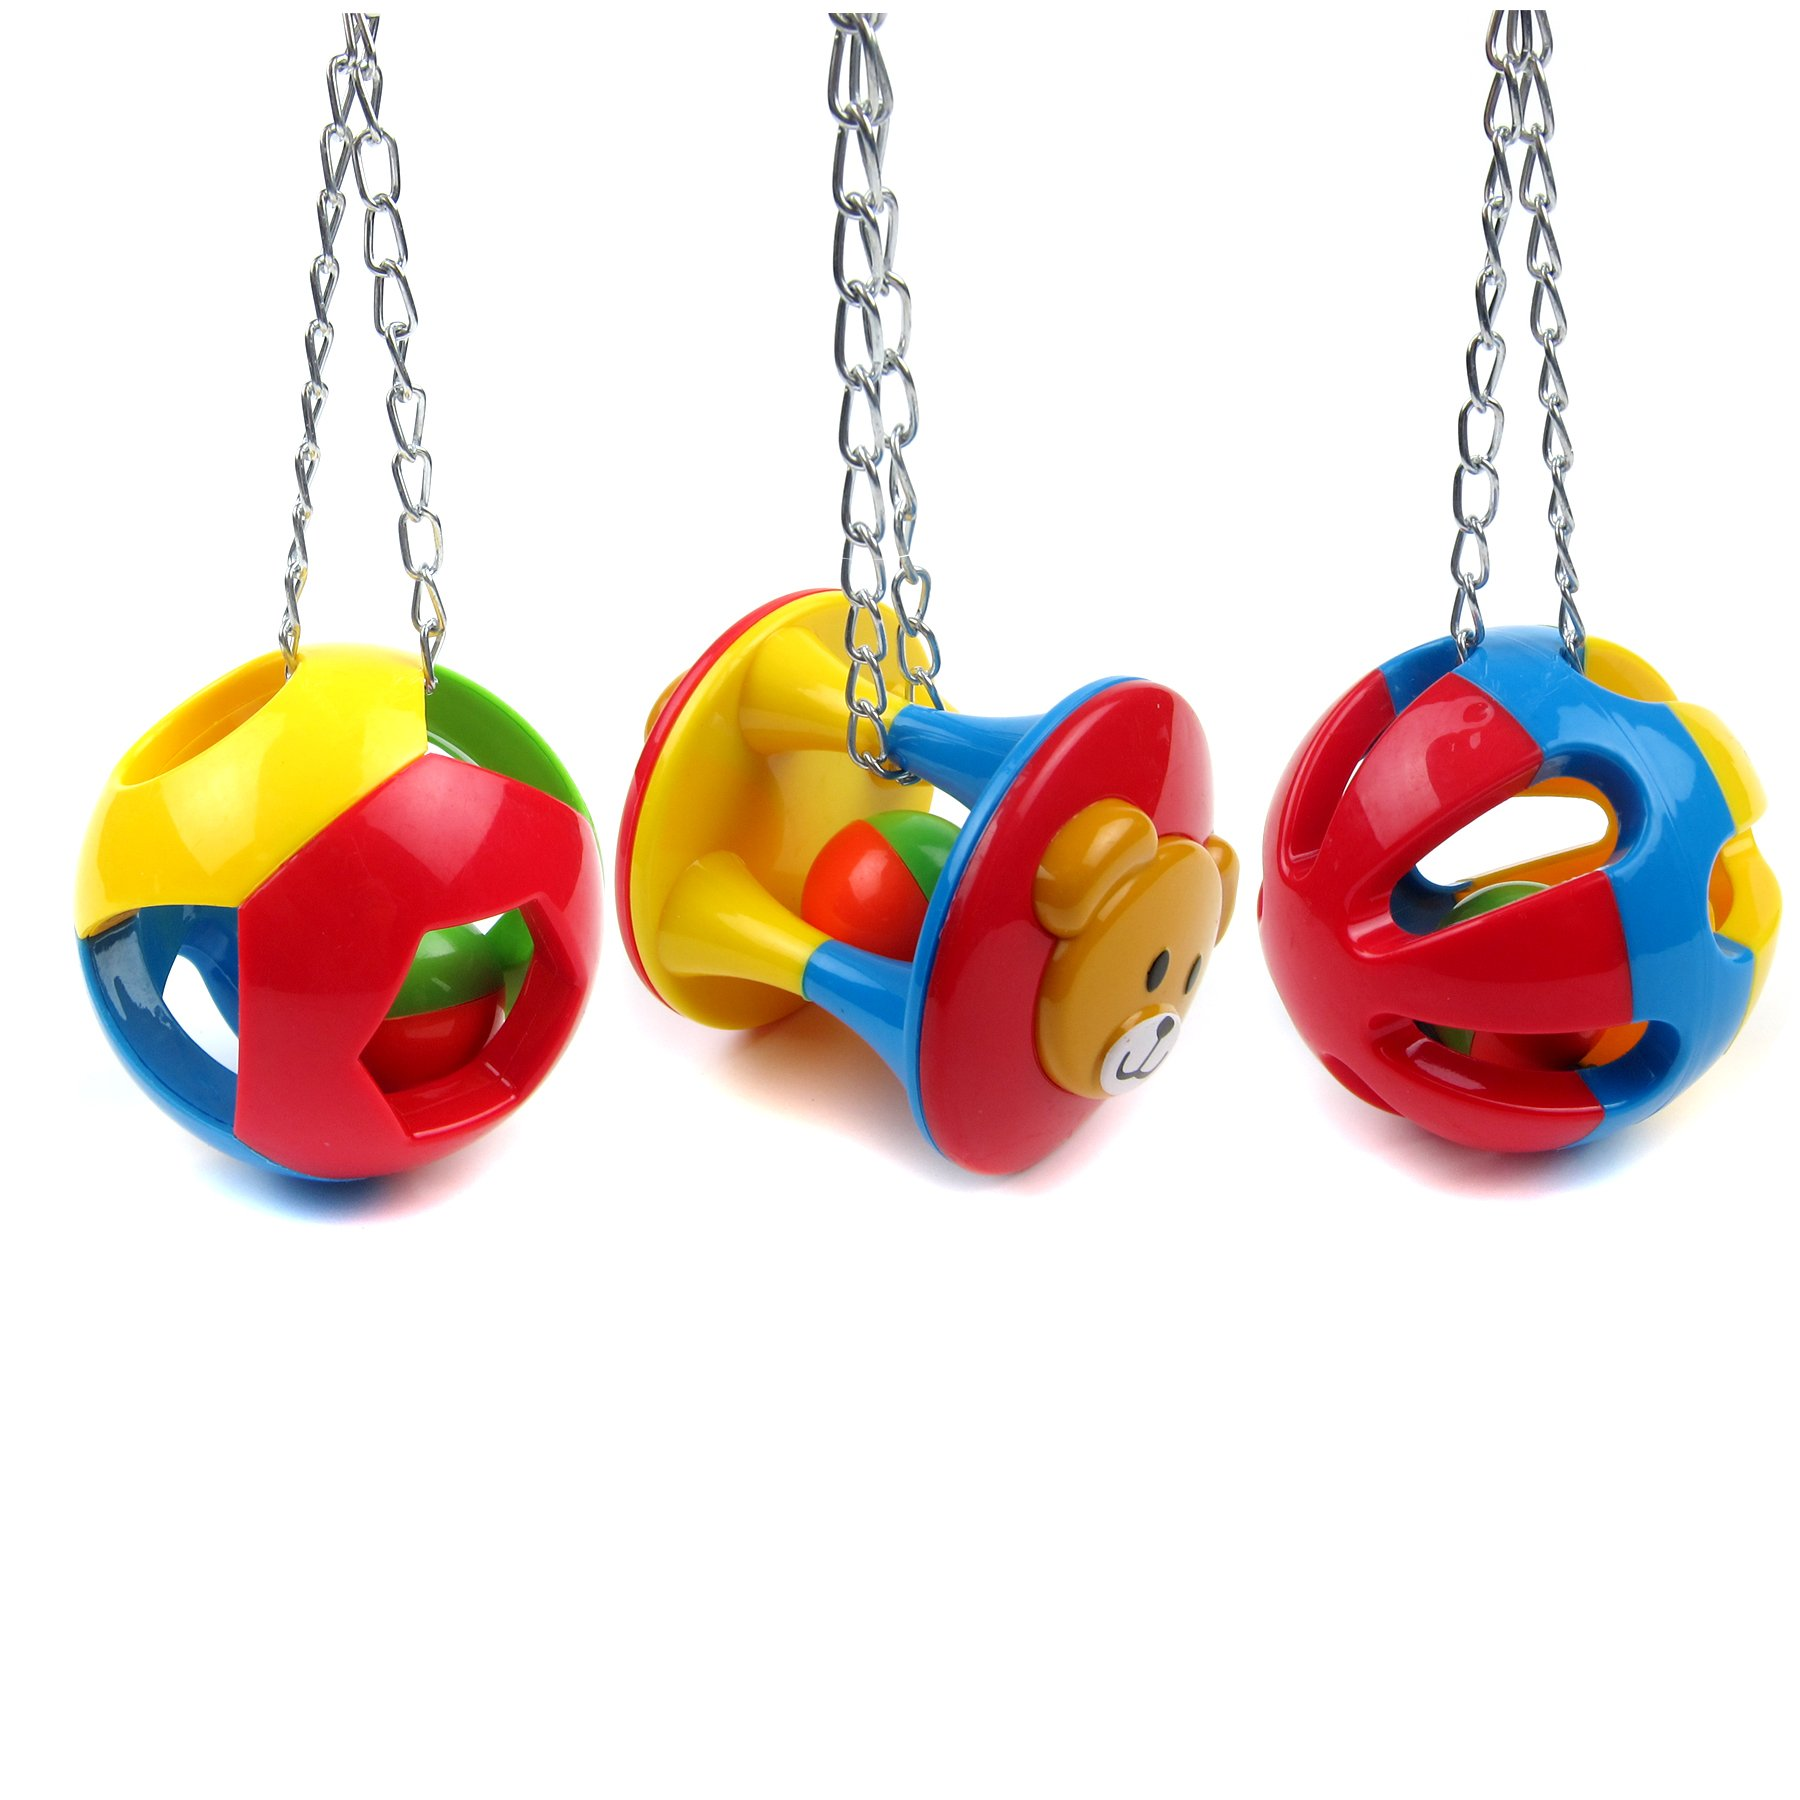 Alfie Pet by Petoga Couture - Drew 3-Piece Set Hanging Ball Toy with Bell for Birds